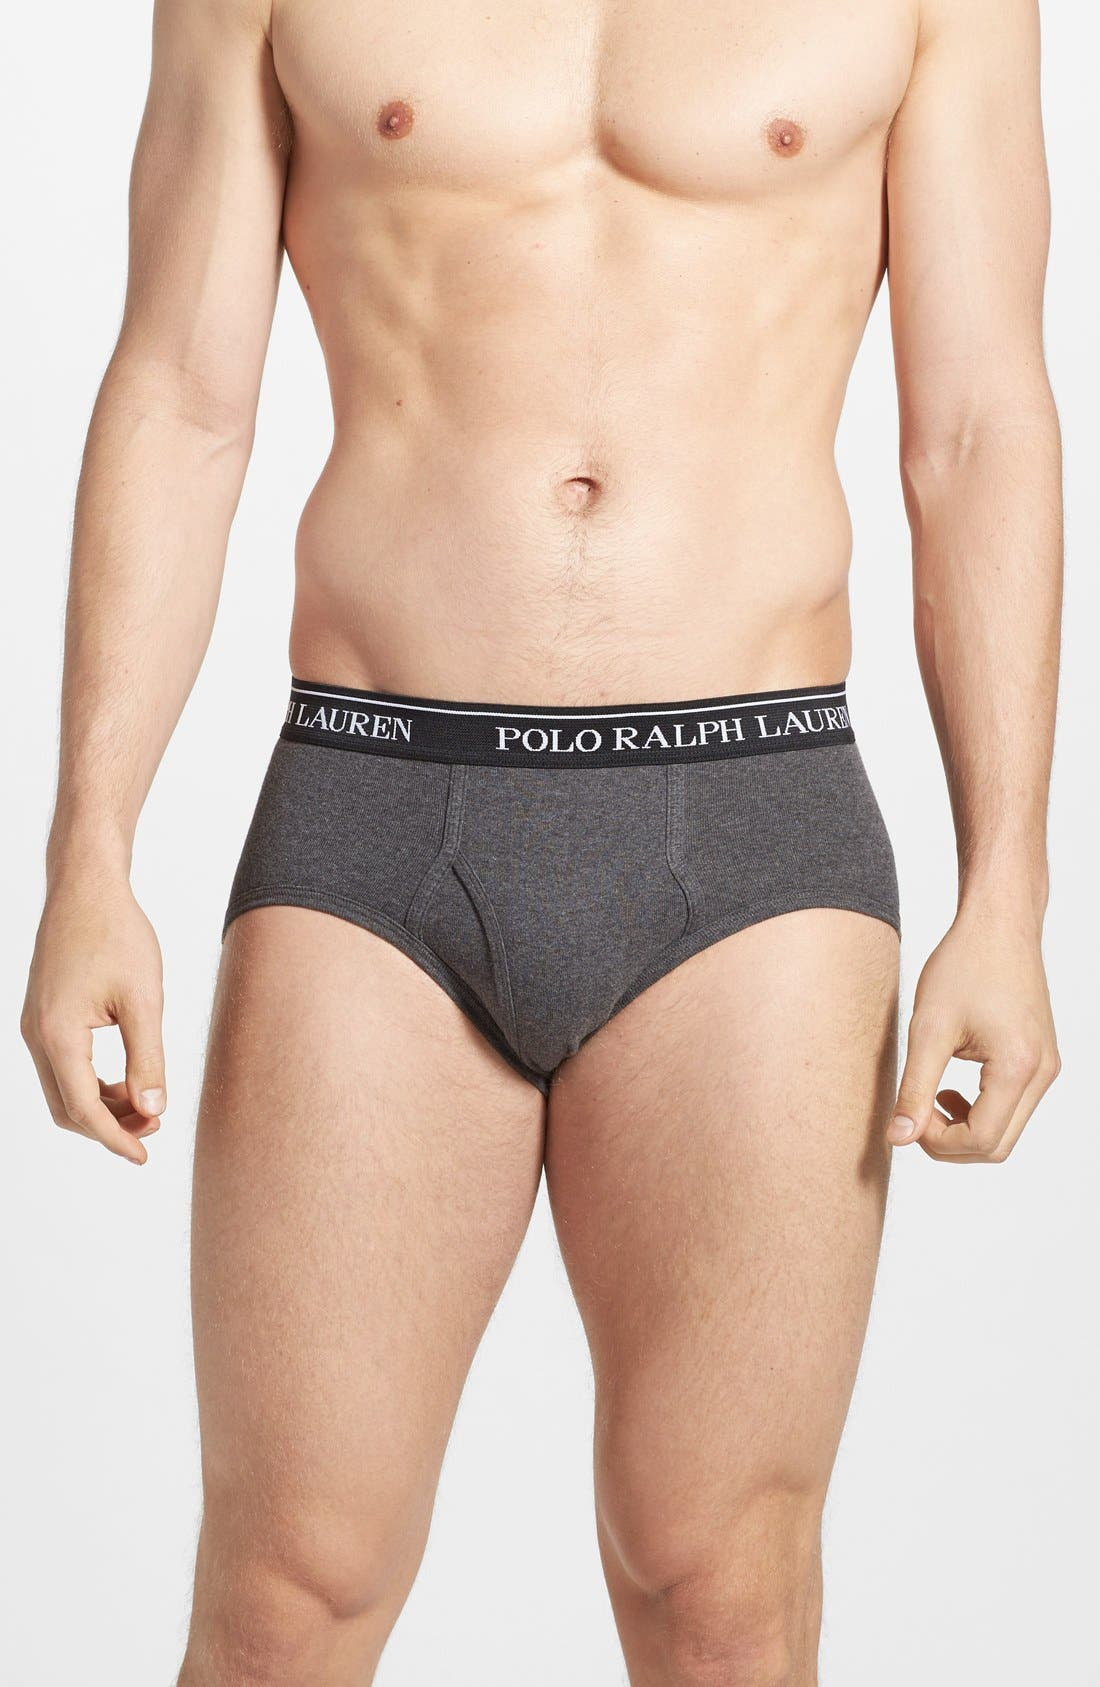 4-Pack Low Rise Briefs,                             Alternate thumbnail 4, color,                             BLACK/ GREY ASSORTED